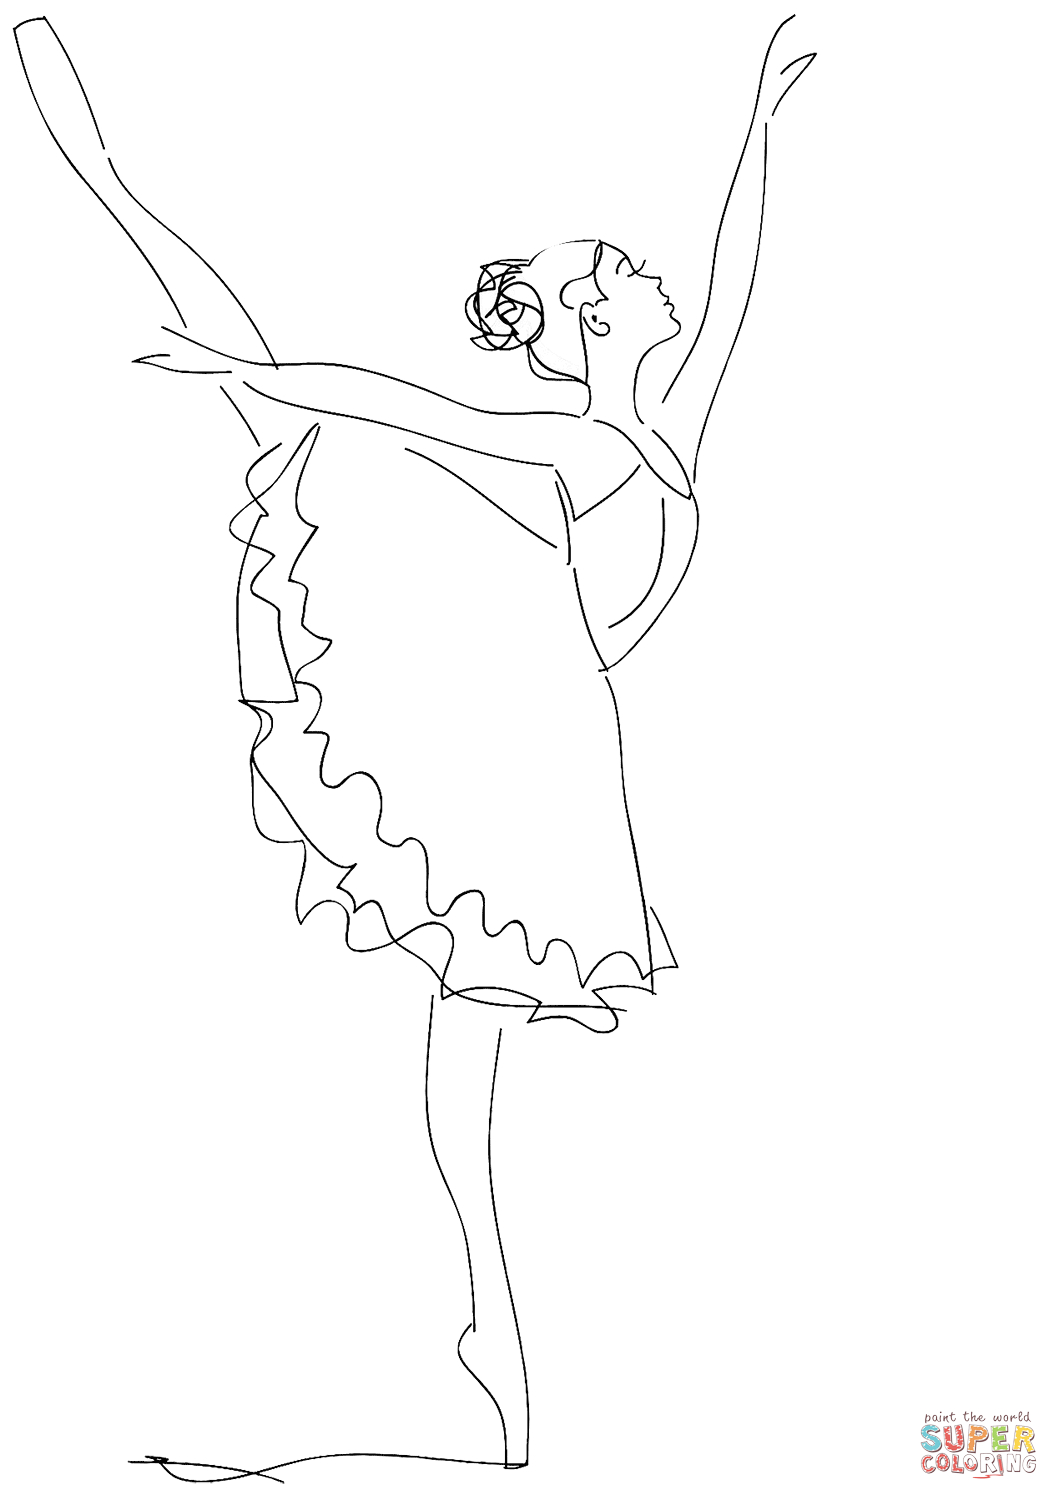 Ballerina Coloring Pages For Kids Ballerina Coloring Page Free Printable Coloring Pages